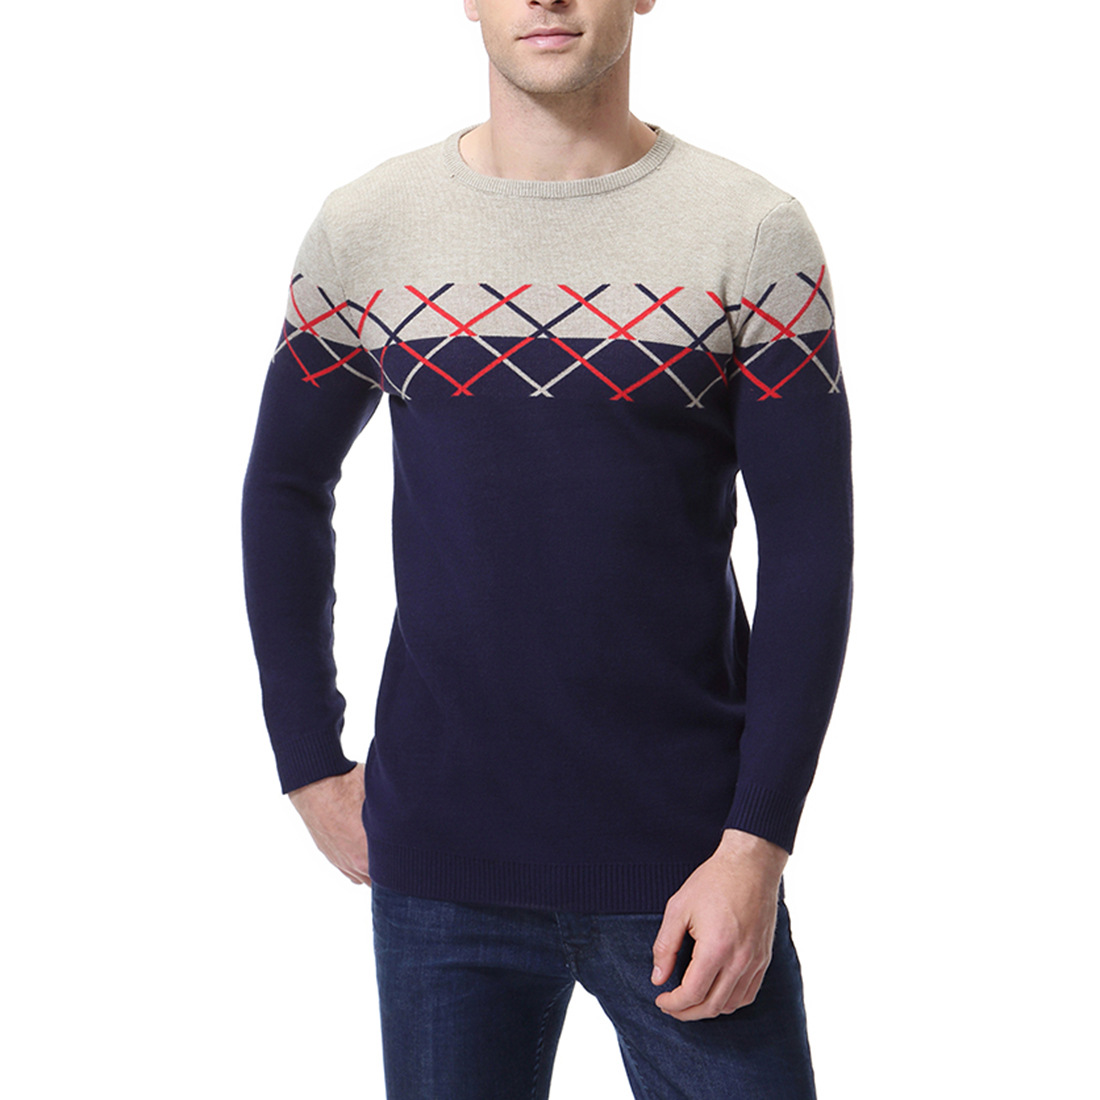 2018 Men's Plaid Color Matching Knit Sweater Fashion Men Cotton Round Neck Bottoming Shirt Slim Sweater For Male Autumn Winter Save 50-70%